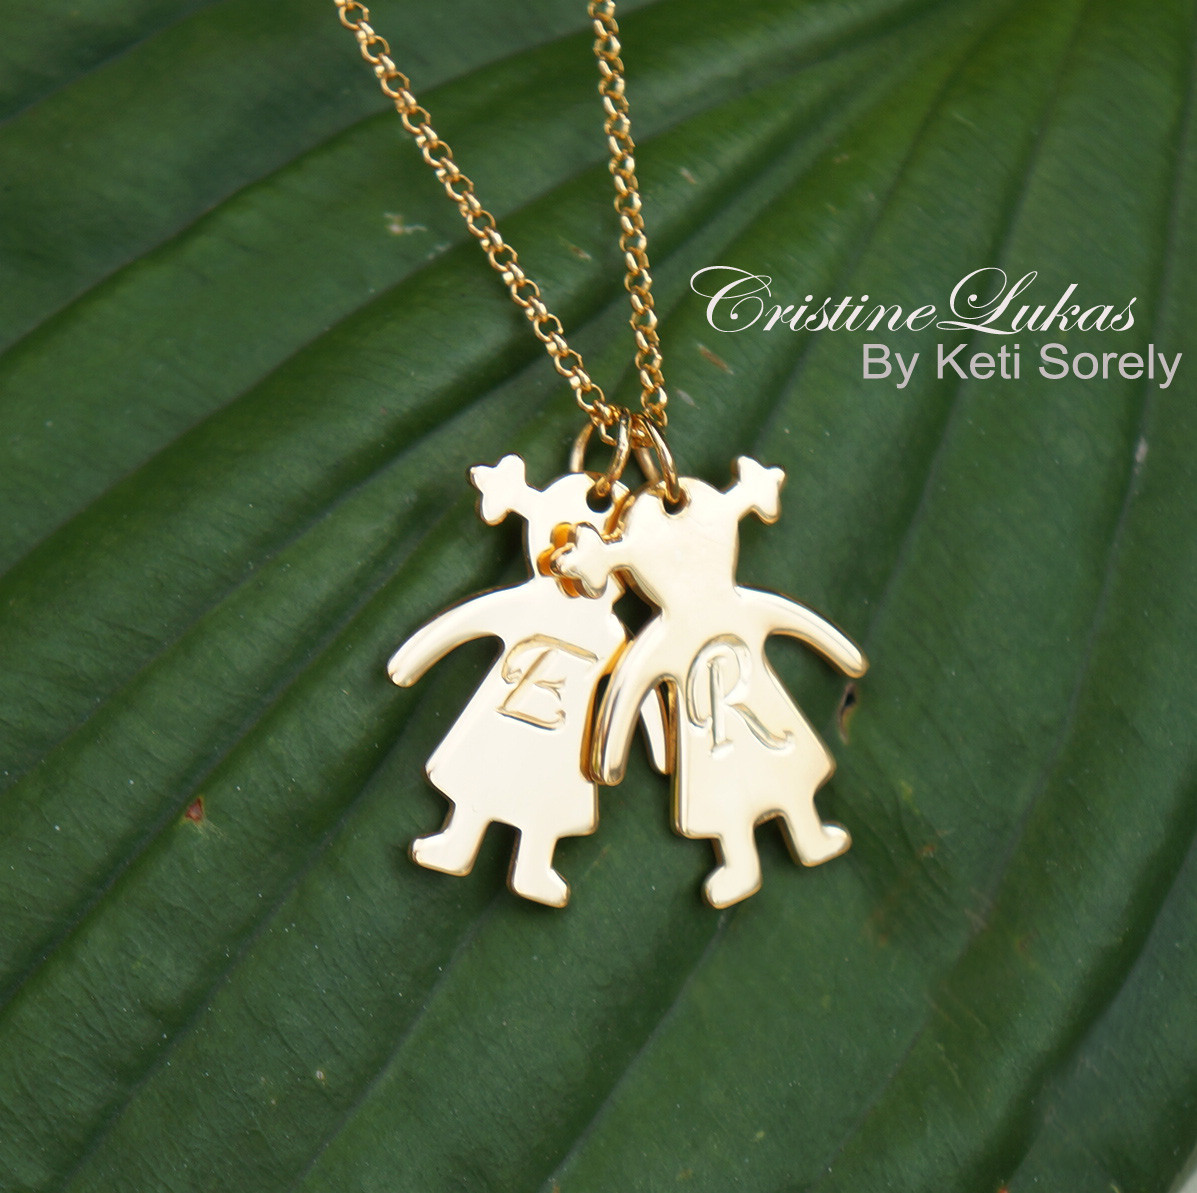 Engraved Kids Initials - Girl Boy Silhouette Charm